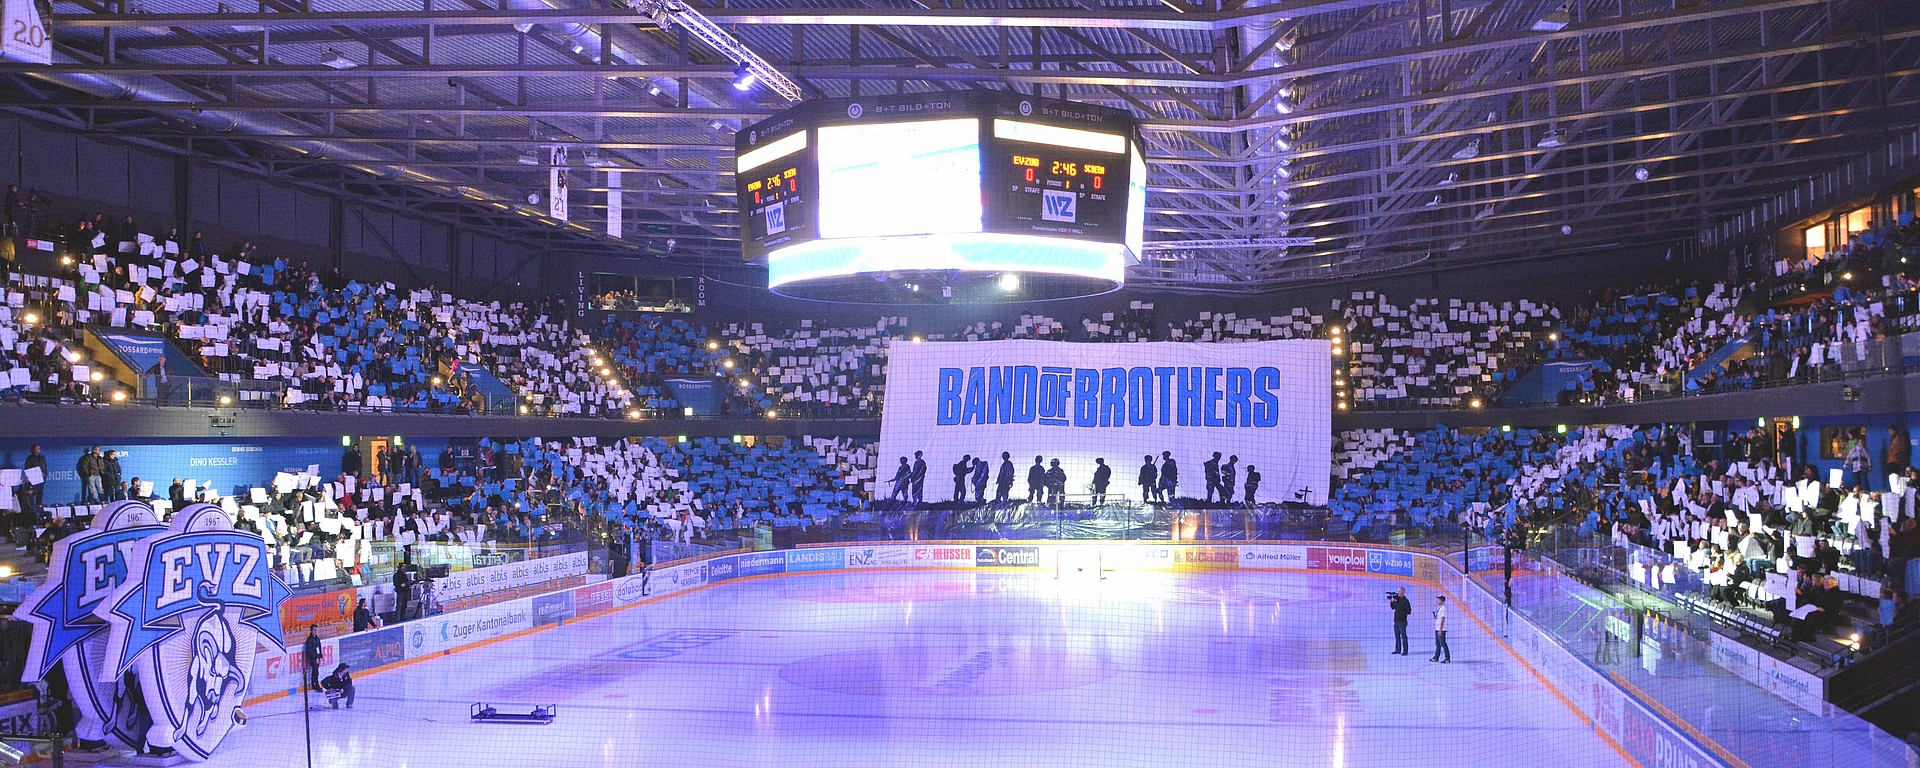 Swiss Ice Hockey Club Is First To Adopt Automated Dynamic